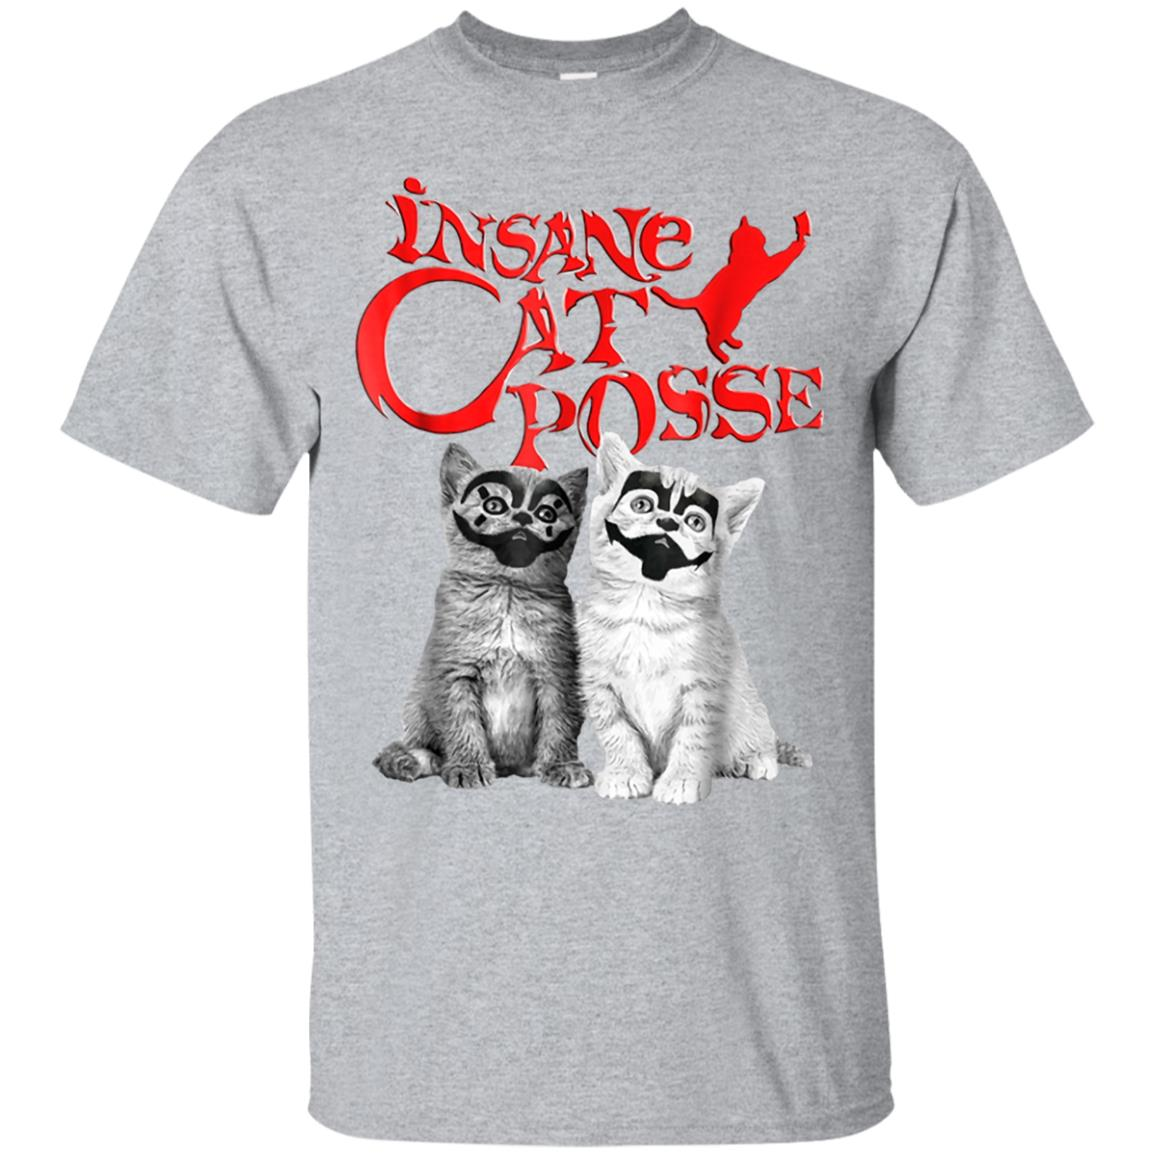 Insane Cat Posse Halloween Costume T-shirt Gift 99promocode